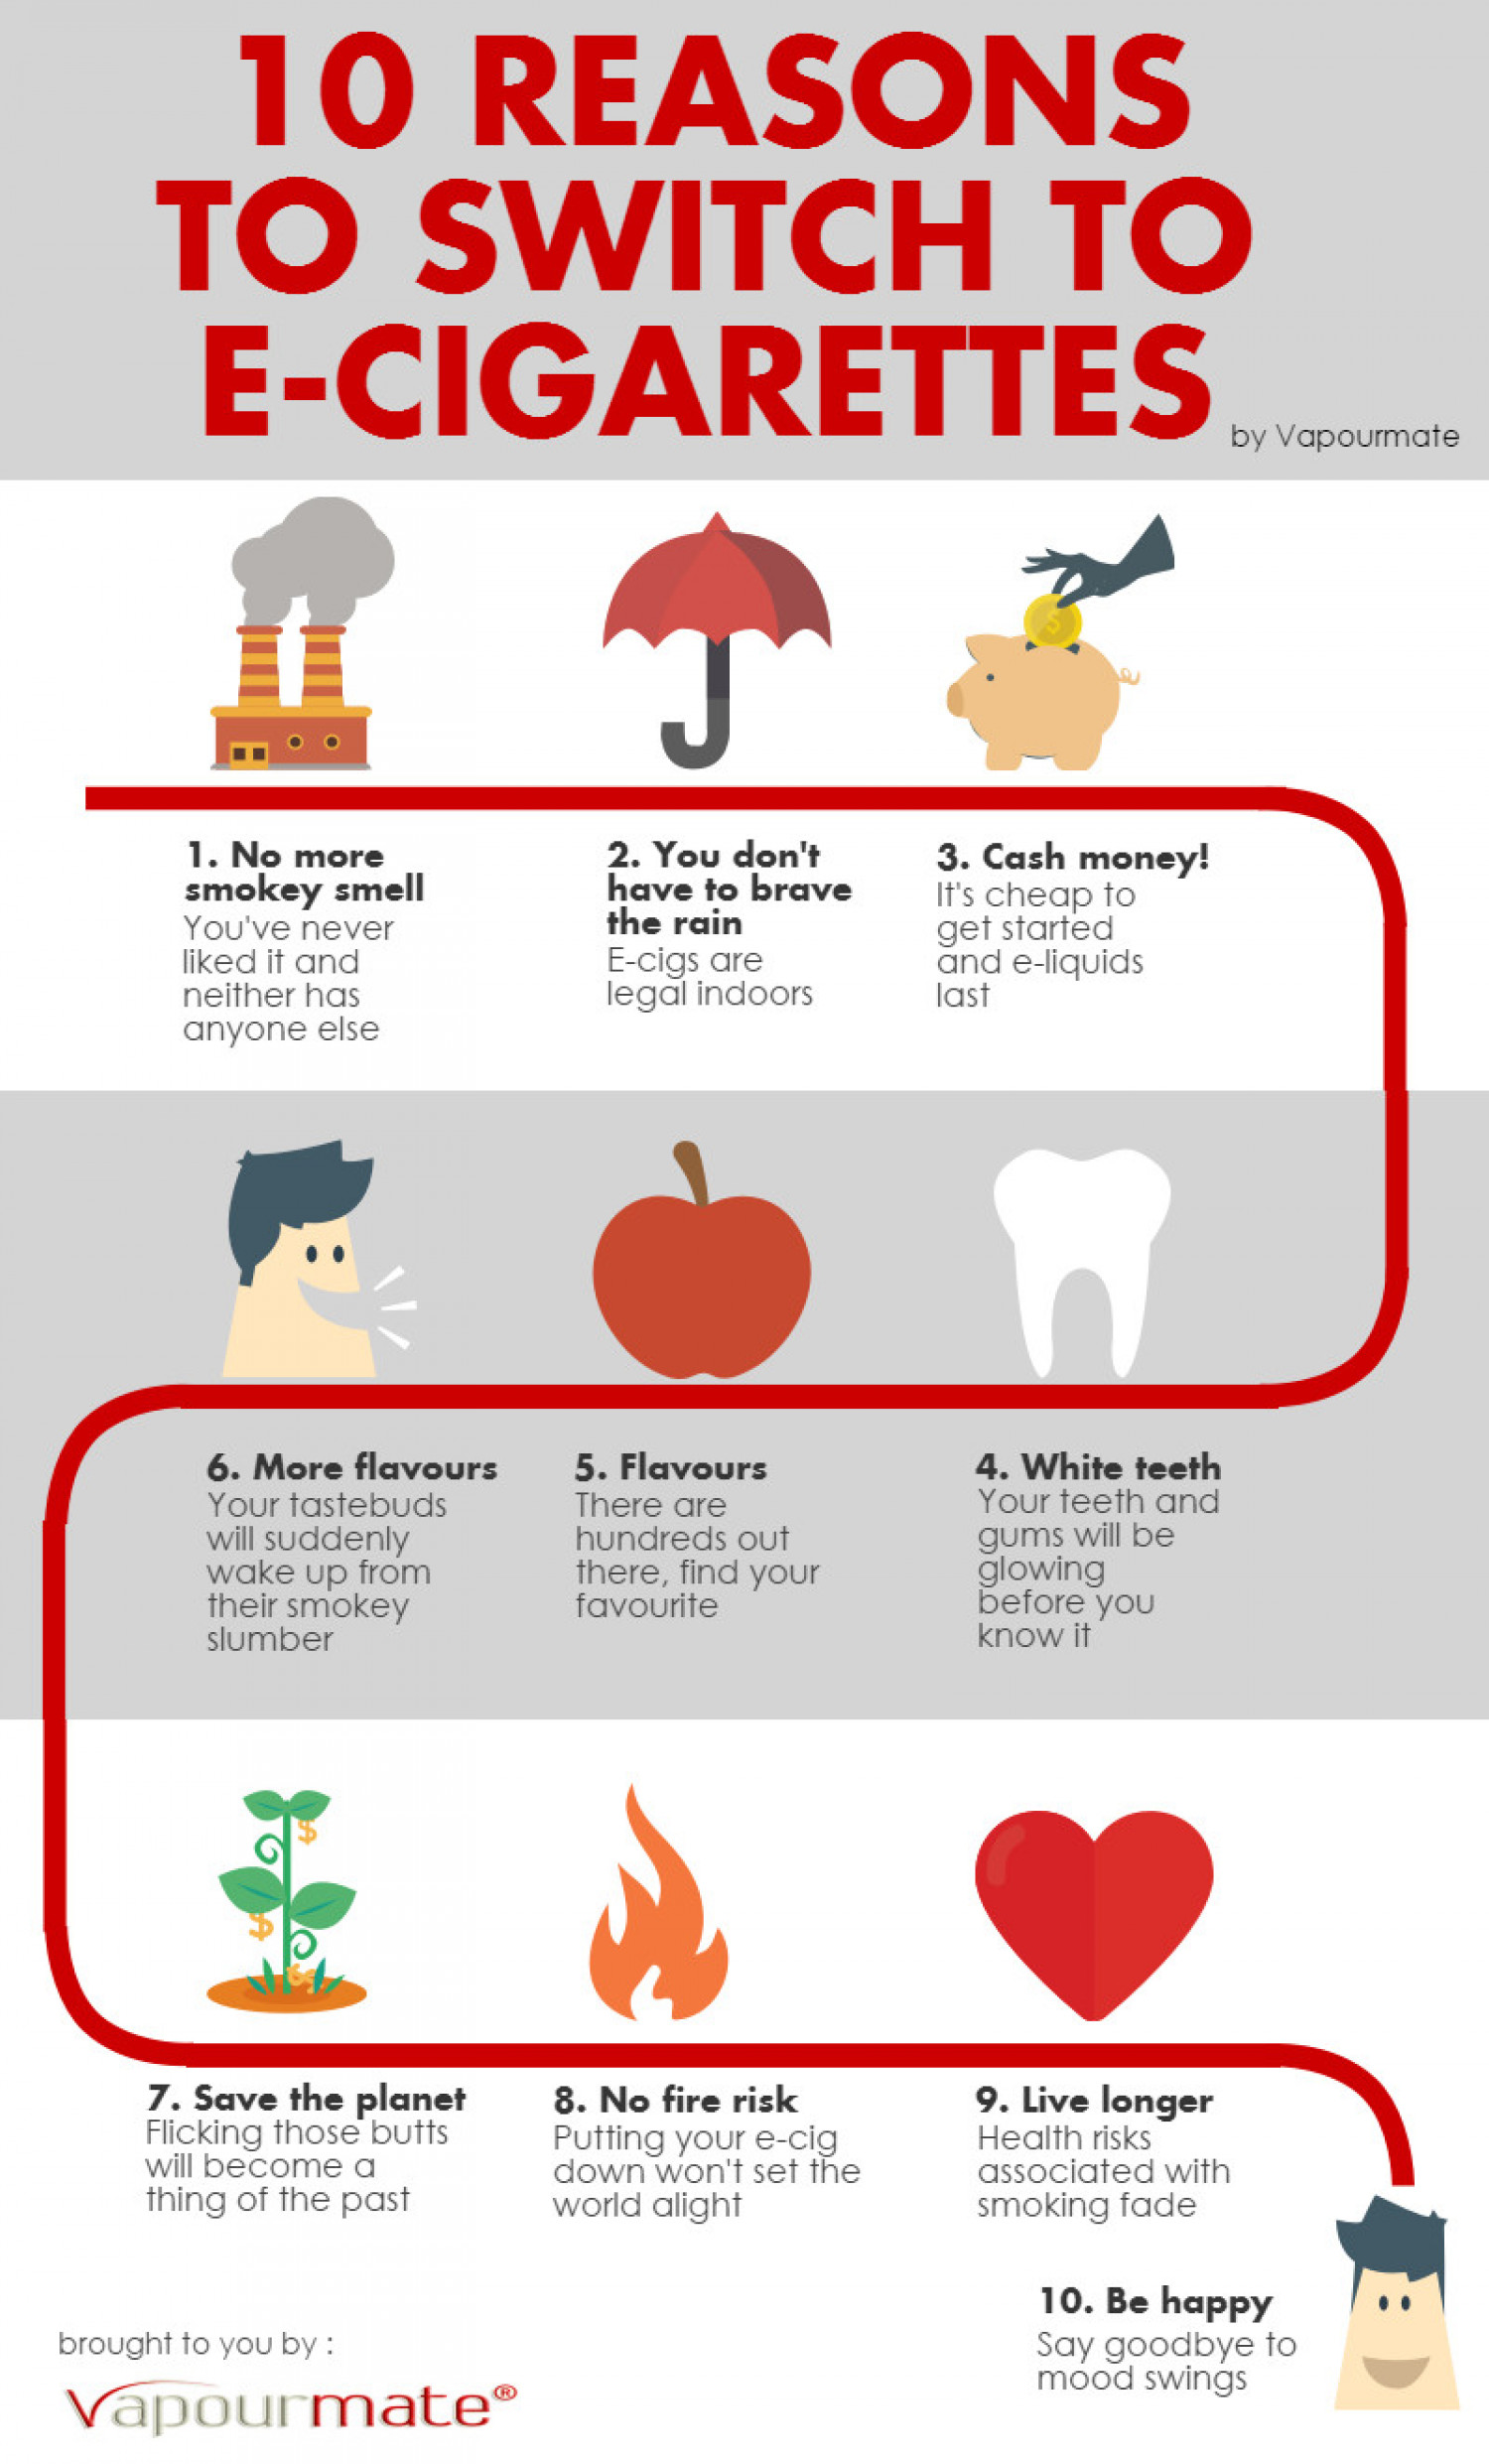 10 Reasons to Switch to E-Cigarettes Infographic